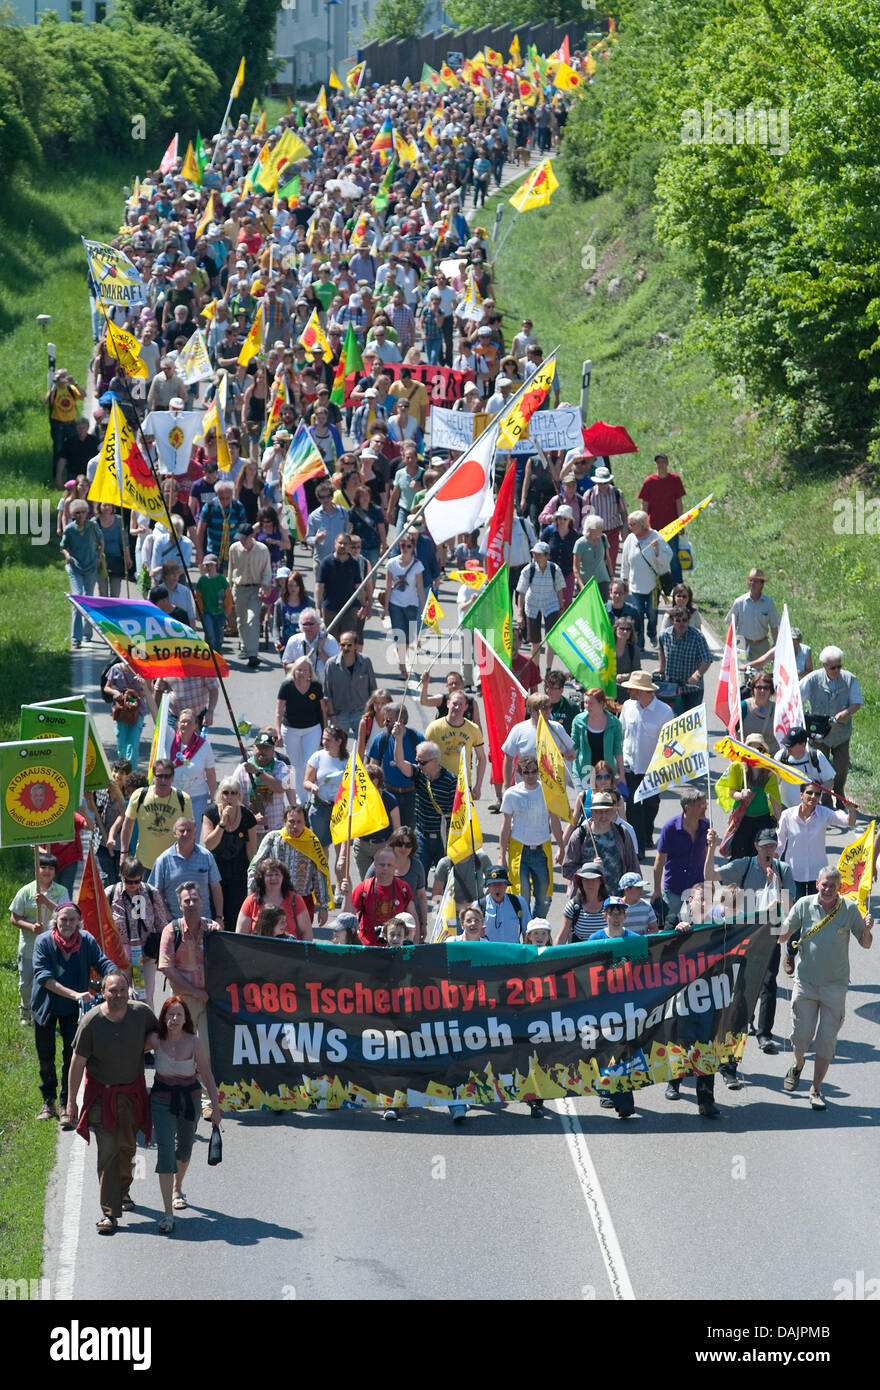 Anti-nuclear activists participate in a protest march leading to the nuclear power plant in Neckarwestheim, Germany, - Stock Image